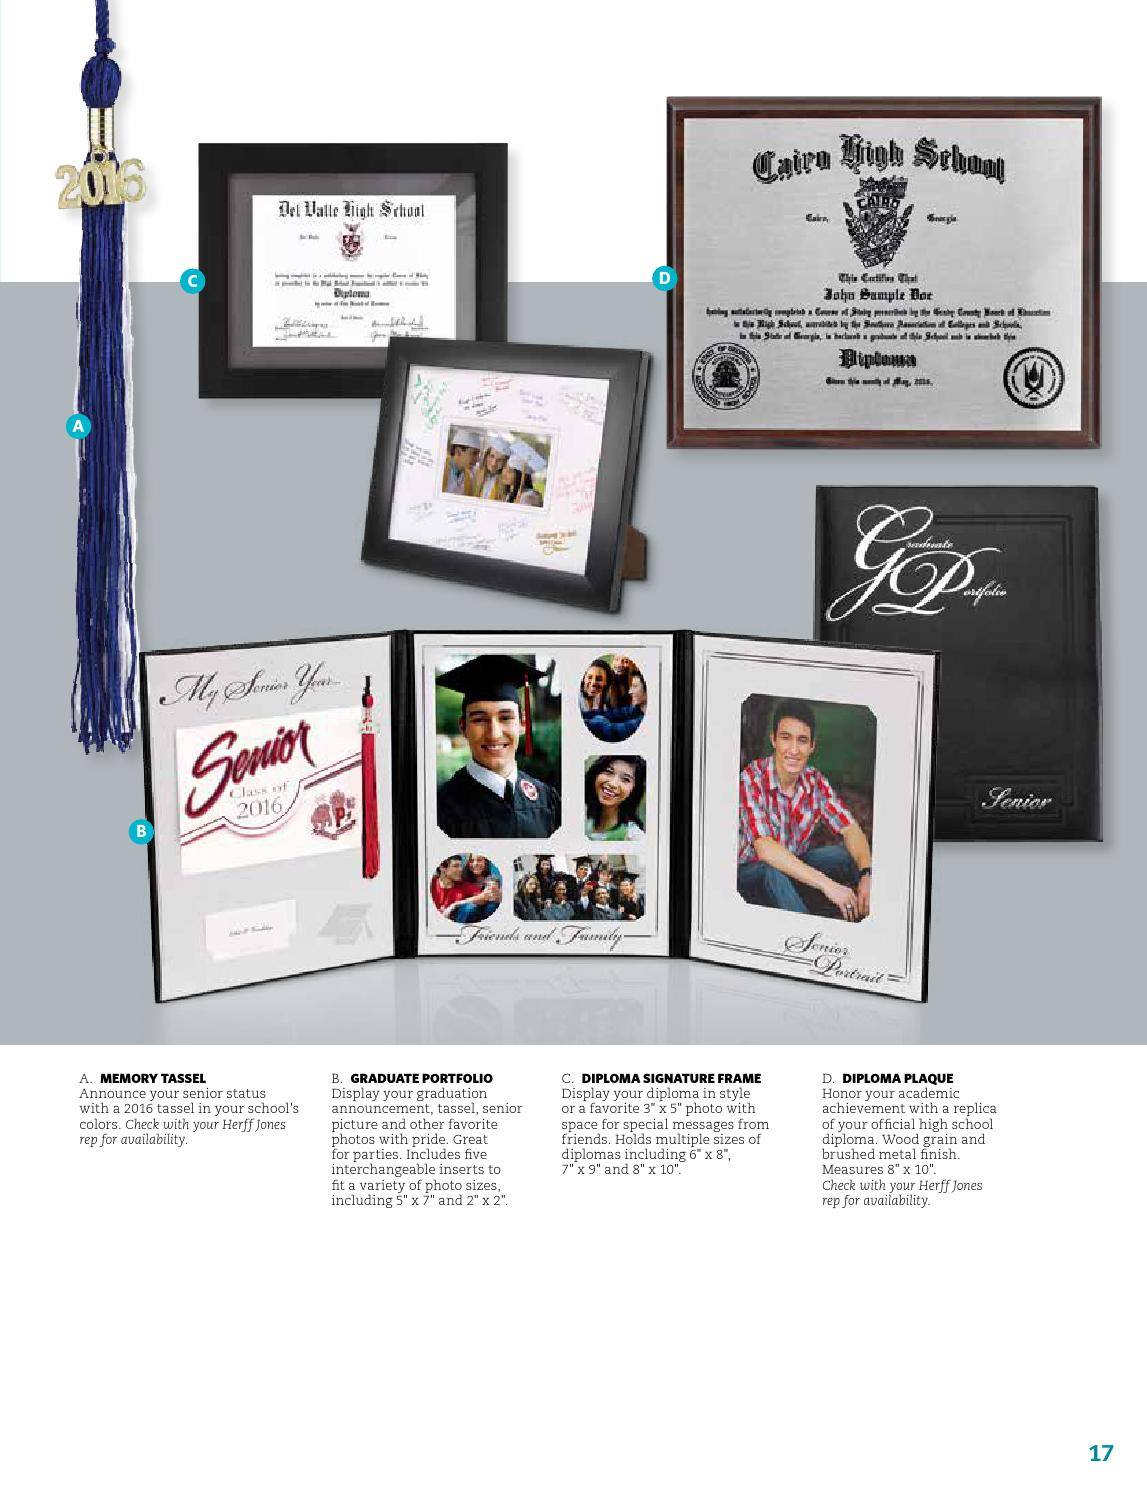 Herff Jones Graduation 2016 Catalog by Herff Jones - issuu